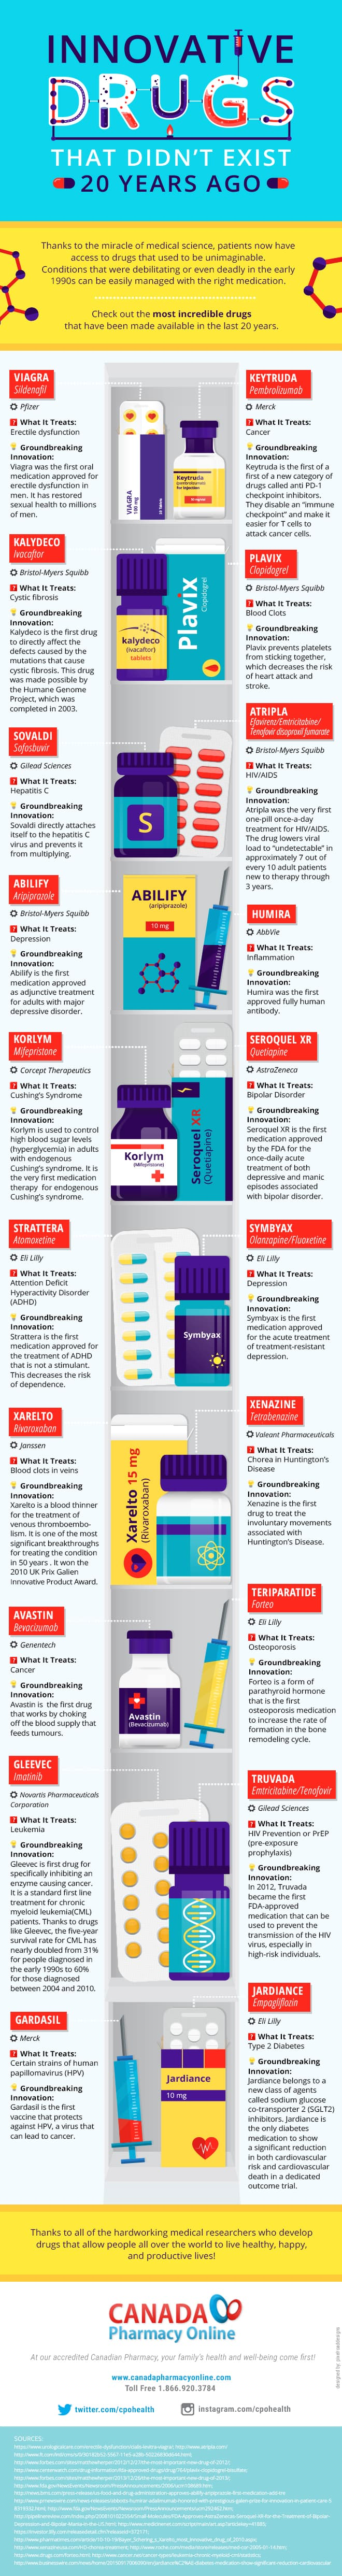 Innovative Drugs that Didn't Exist 20 Years Ago